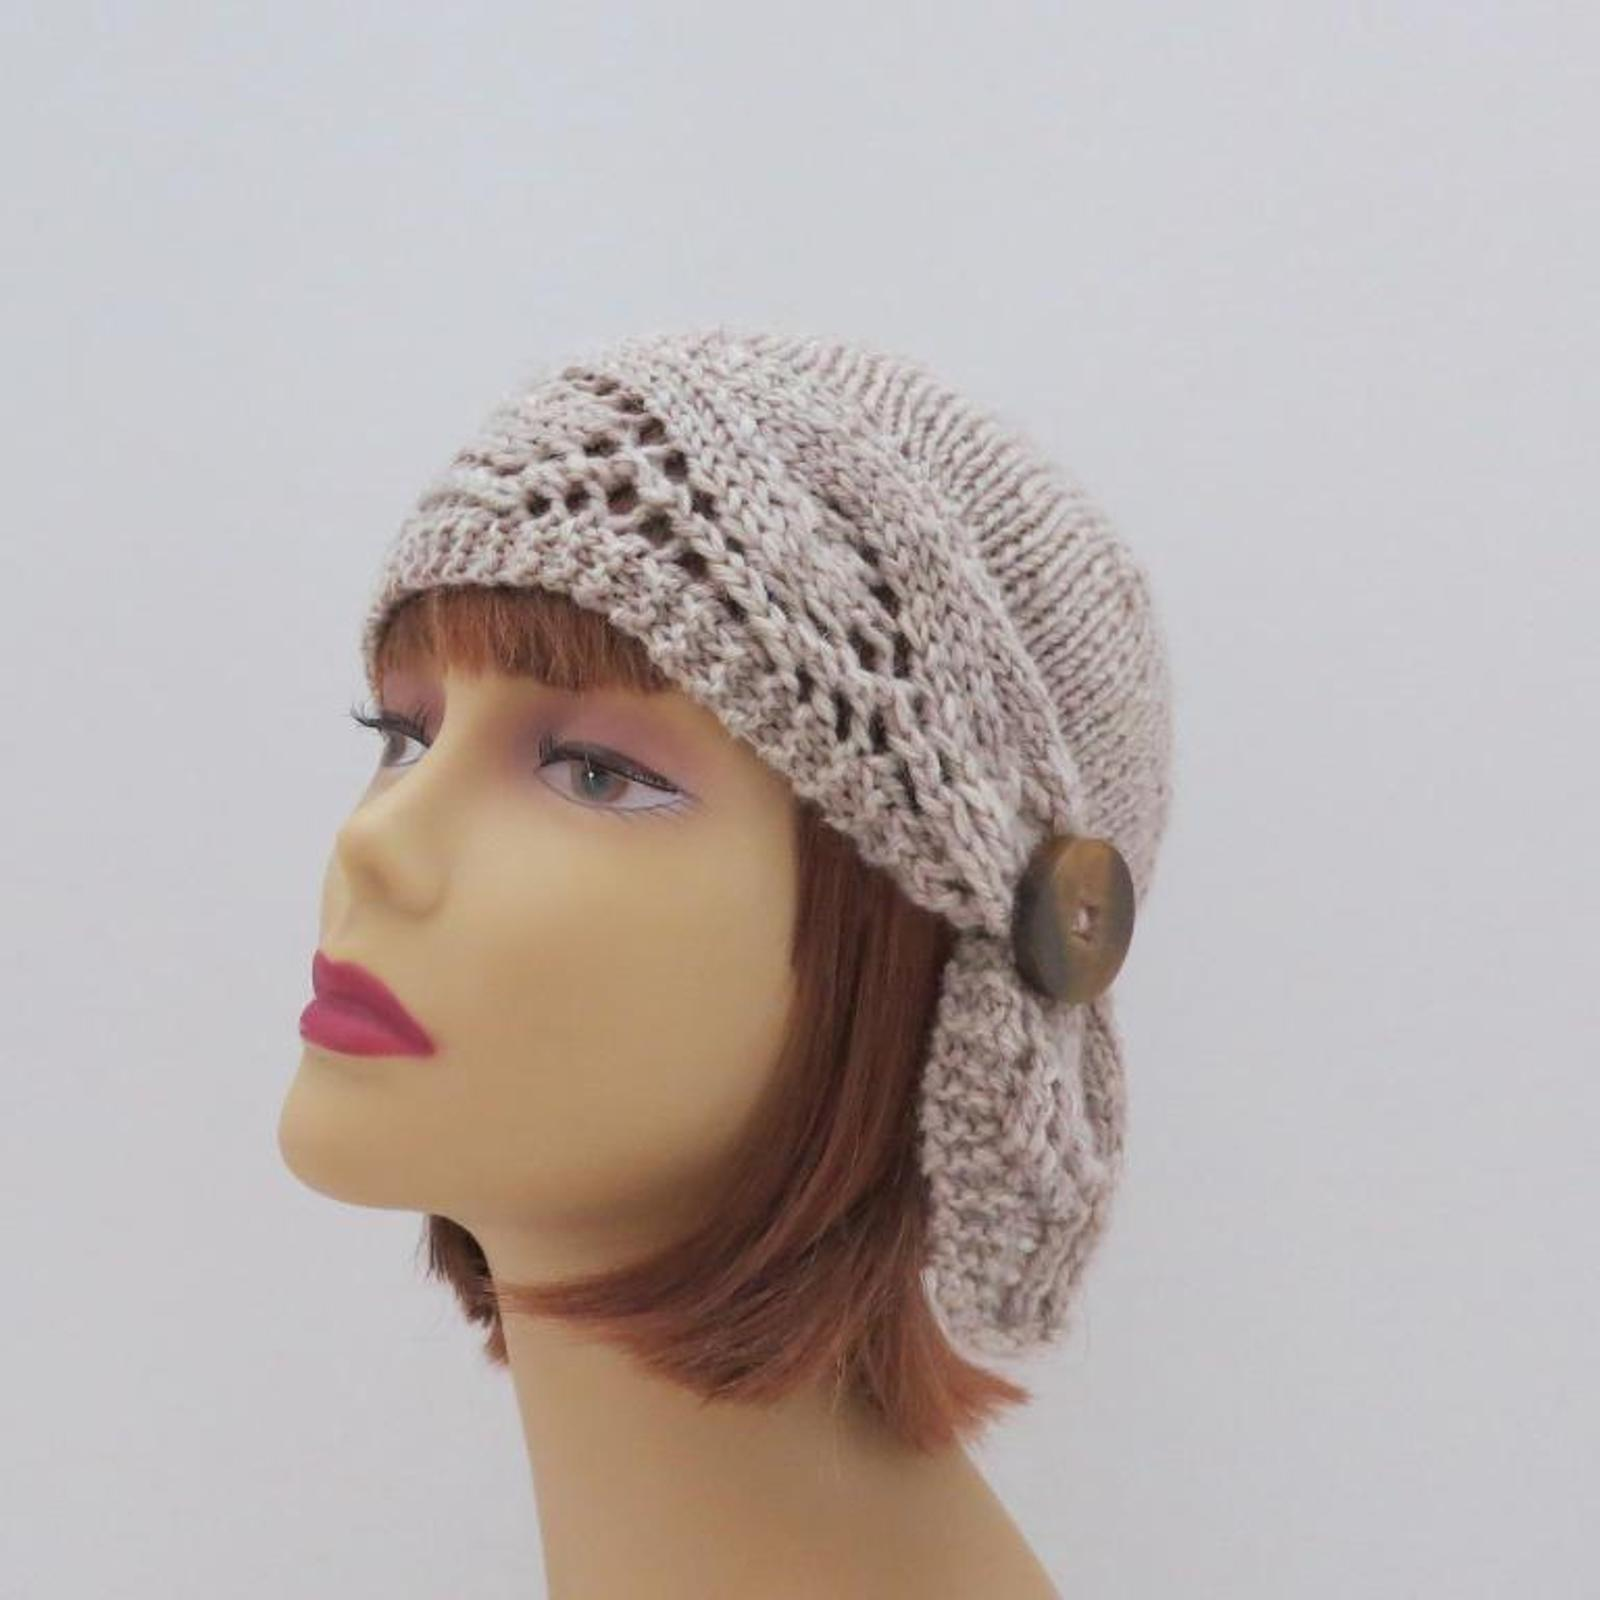 knit Downton Style Adelaide Cloche